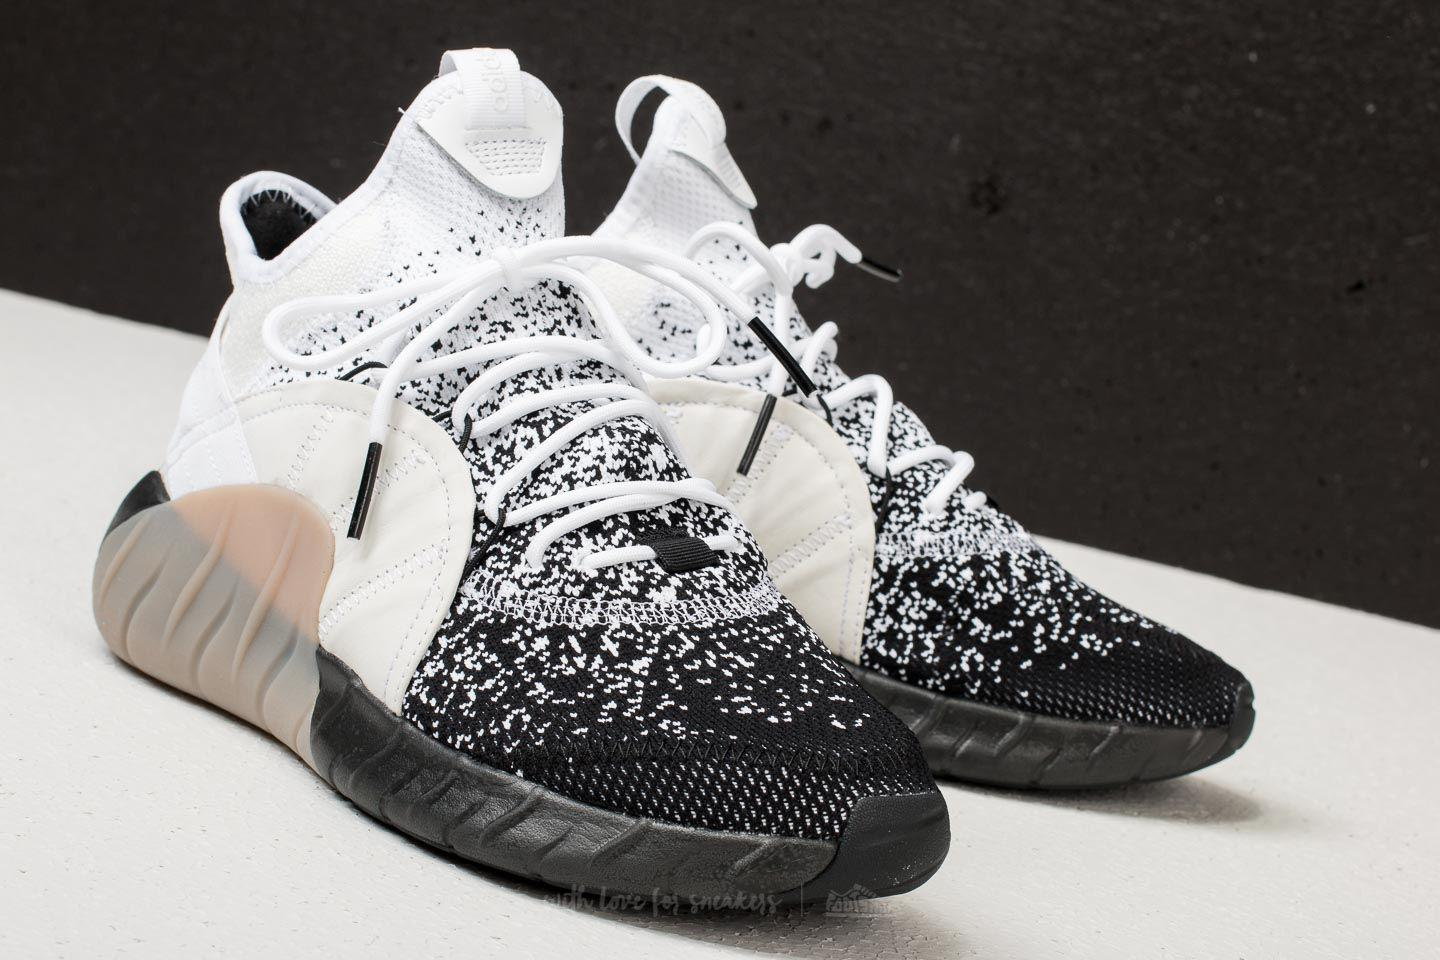 adidas Adidas Tubular Rise Primeknit Ftw / Core Black/ Light Solid Grey i8UPPx